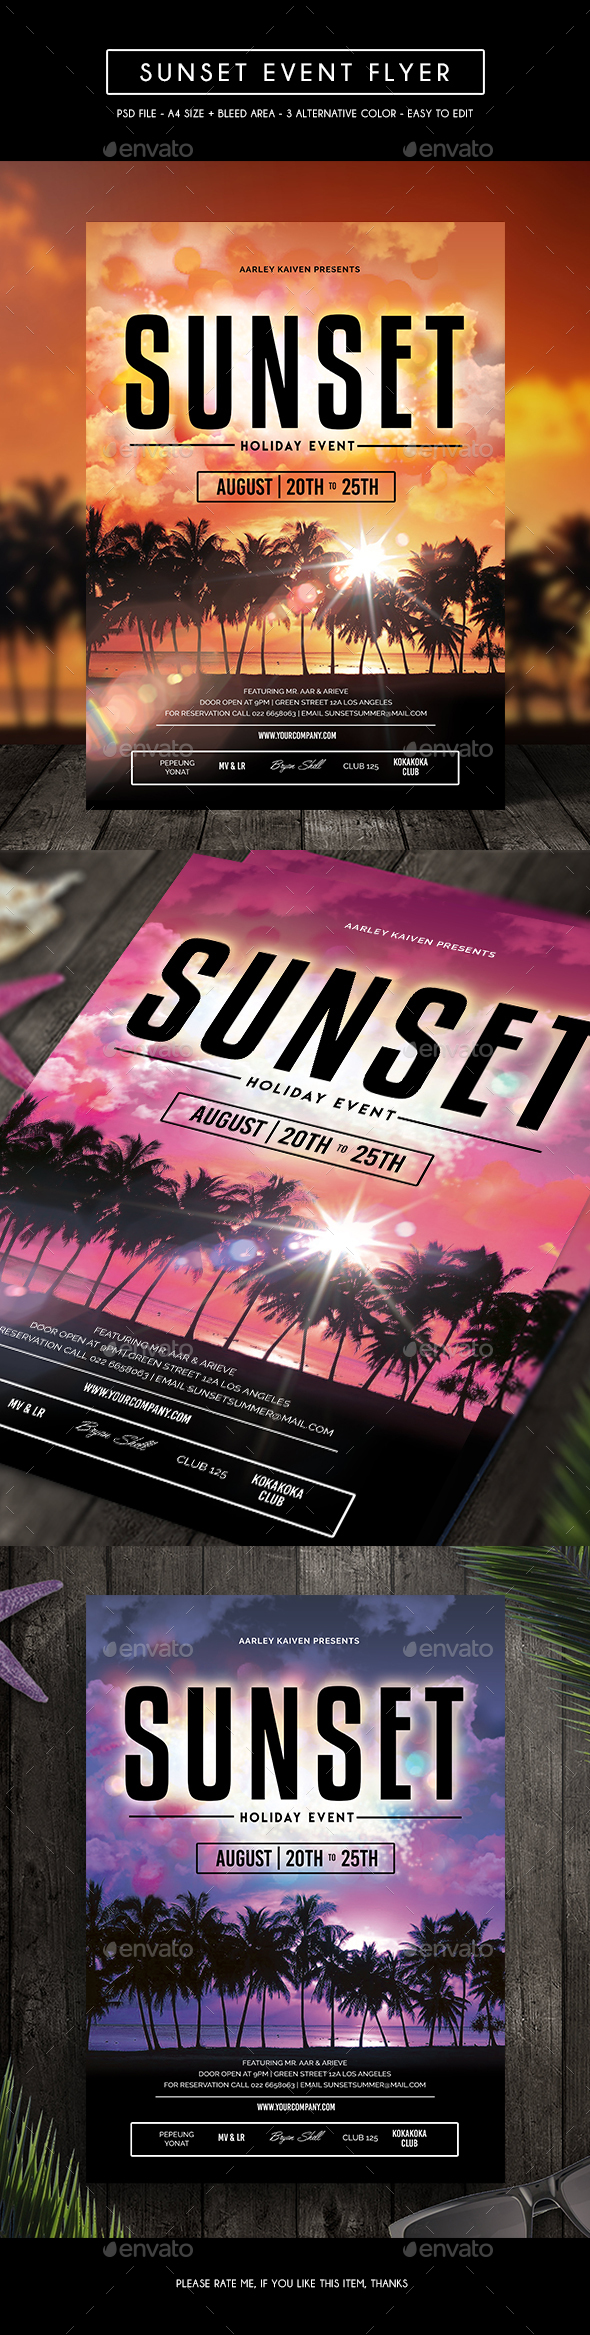 Sunset Event Flyer - Events Flyers